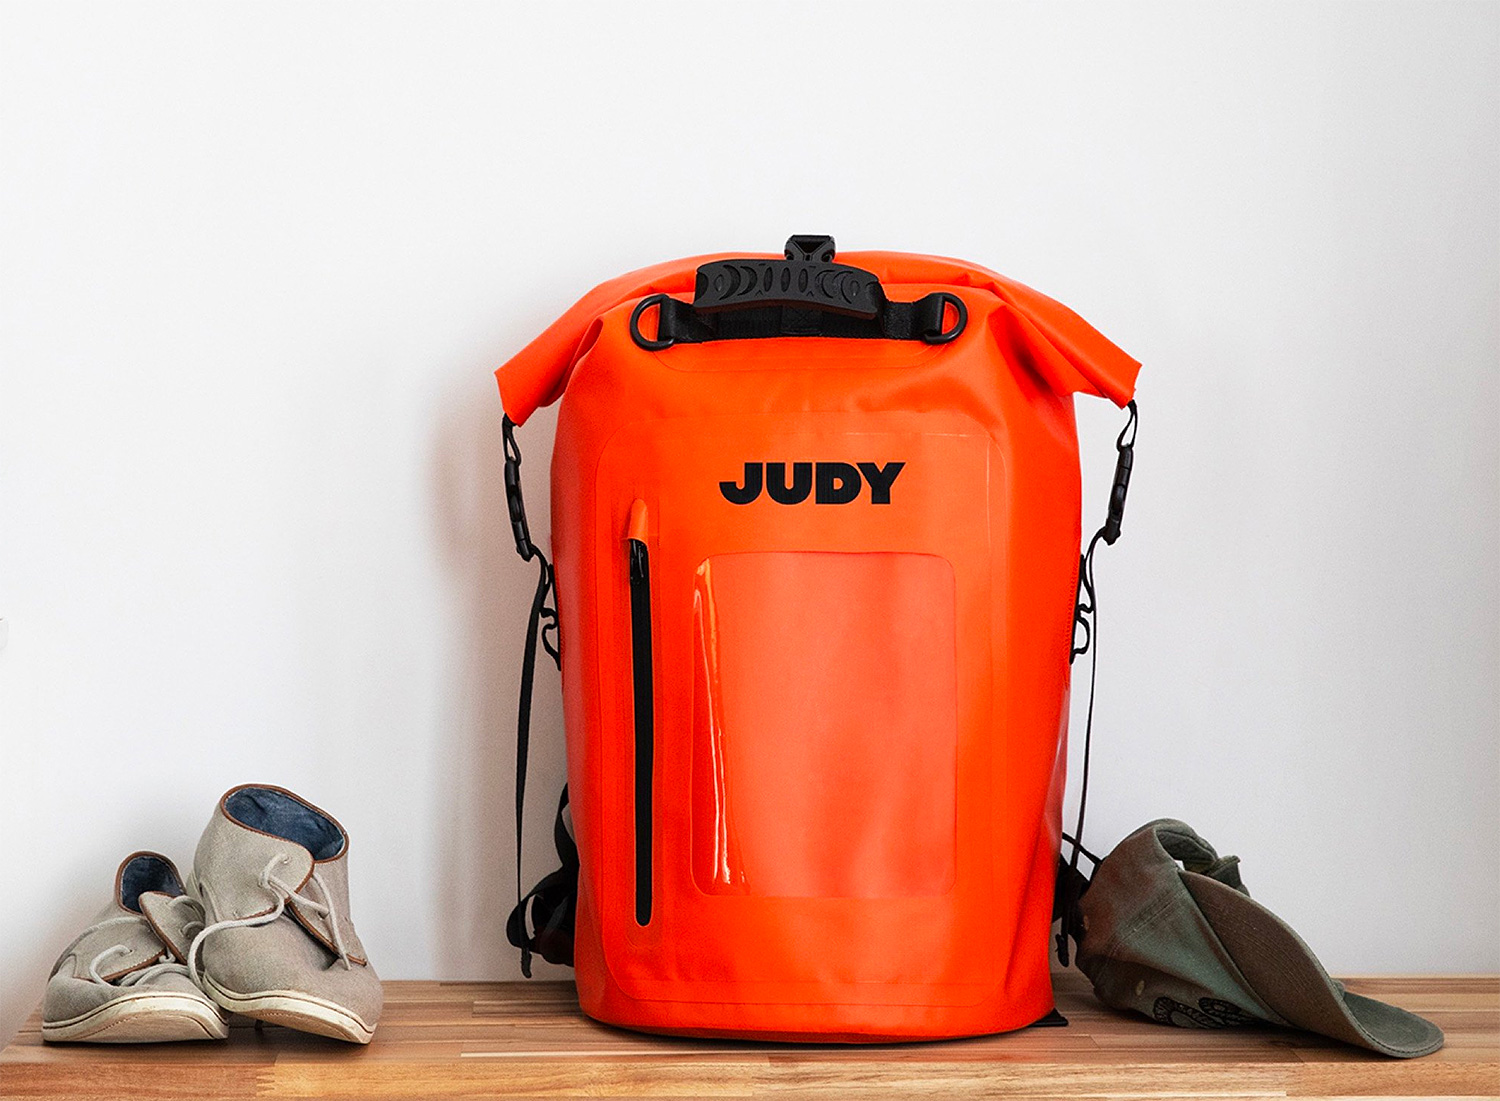 Be Prepared For Any Emergency with Judy Kits at werd.com